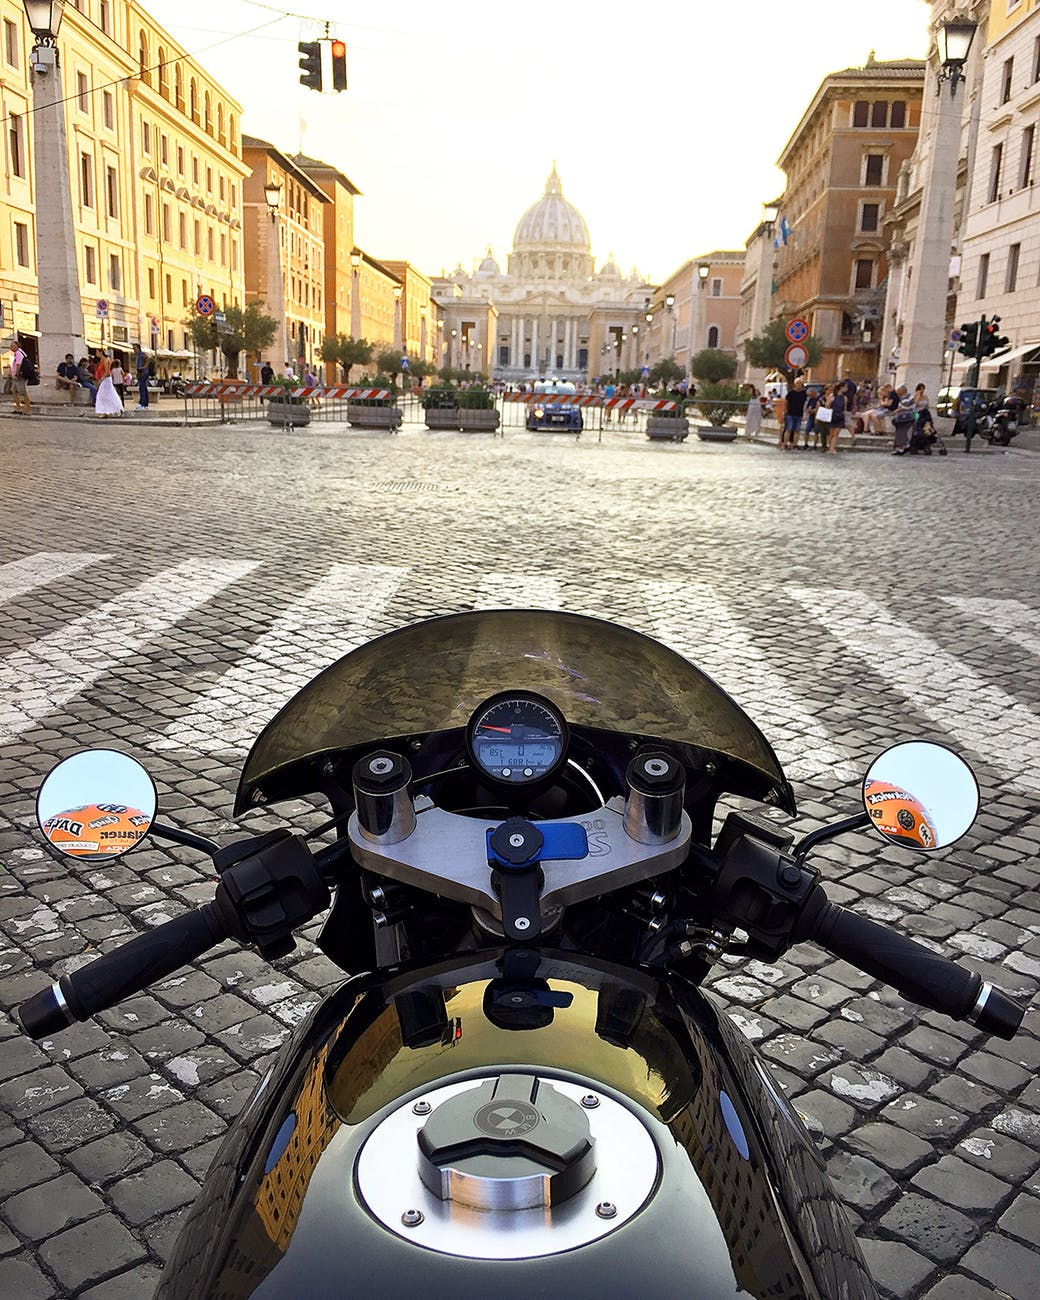 11 Tips to be a Perfect Motorcycle Rider